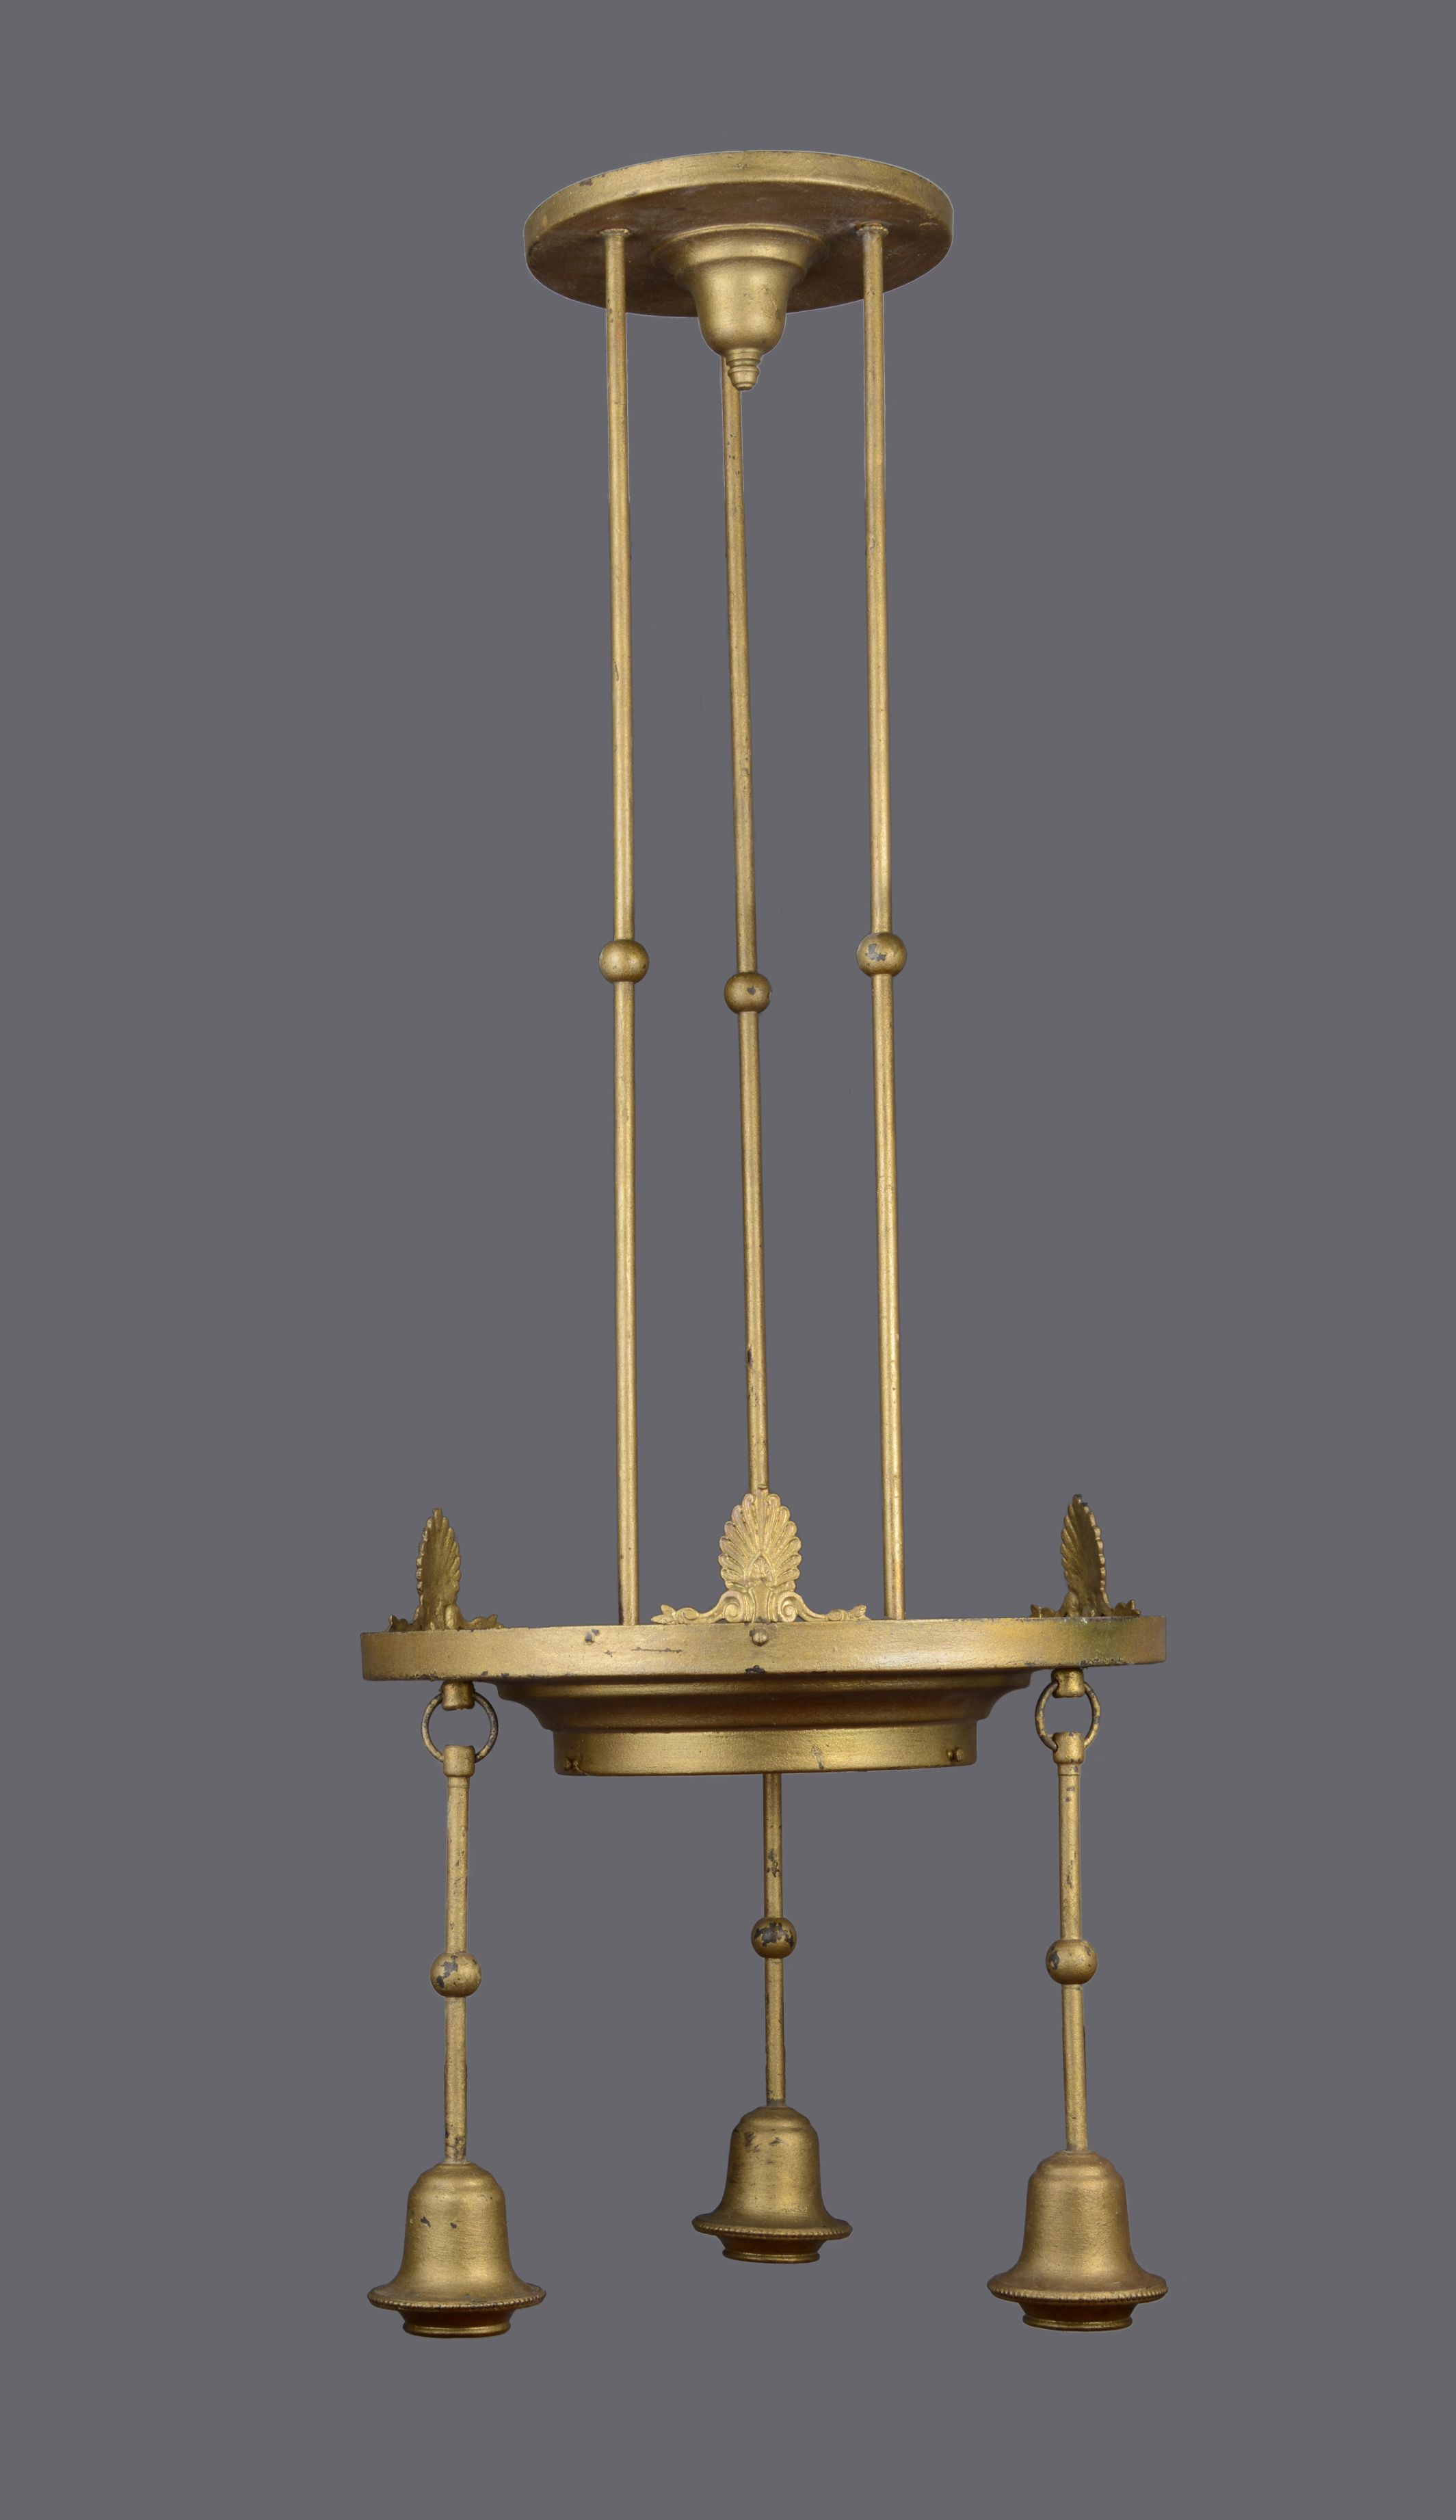 Chandelier, 1900–1914, Trakai History Museum, GEK-4830. Photo by Andrius Valužis, 2017